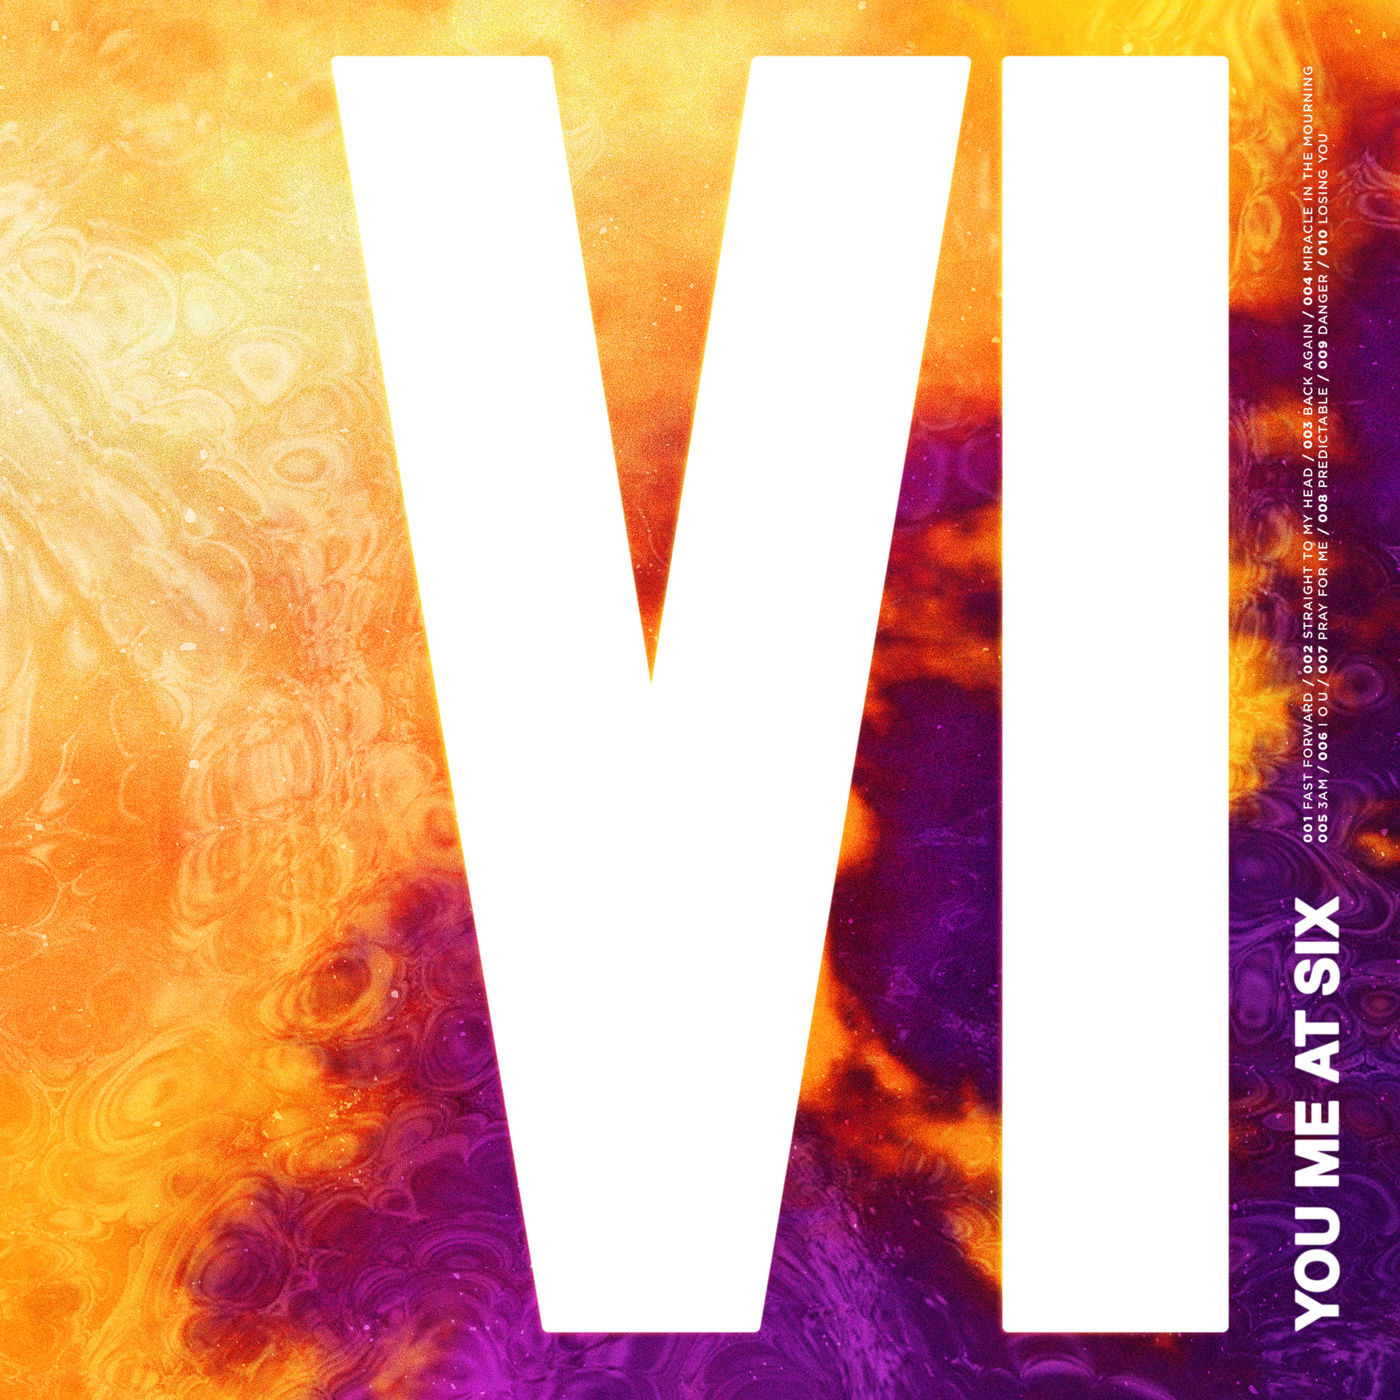 Download torrent You Me At Six - VI (2018)